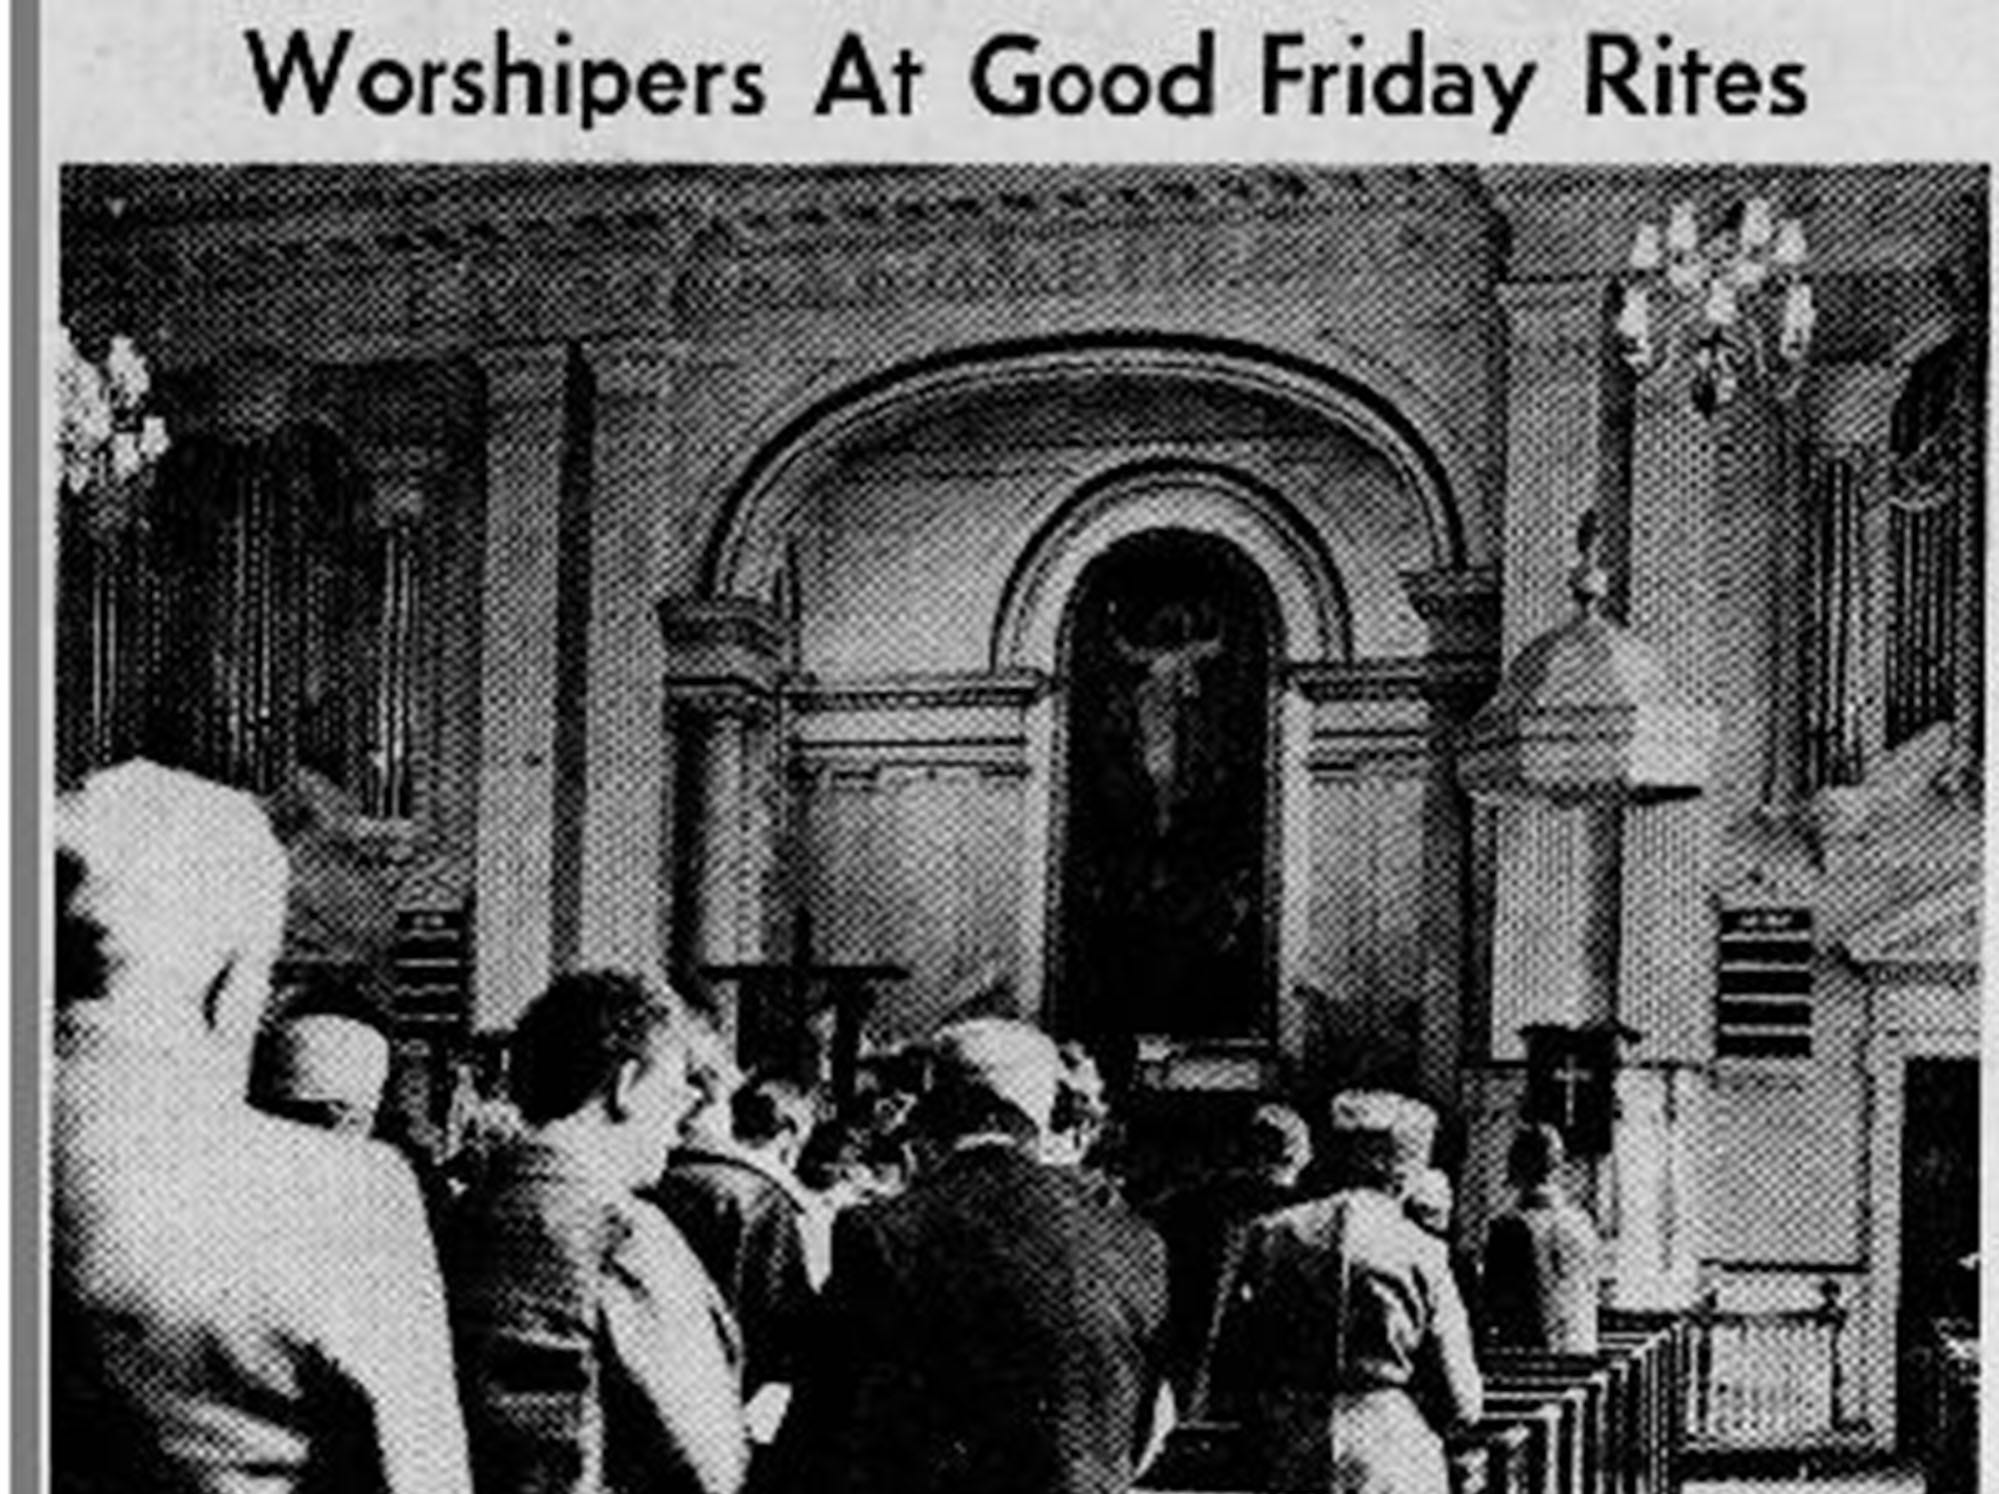 Photos from Good Friday service in March, 1970.